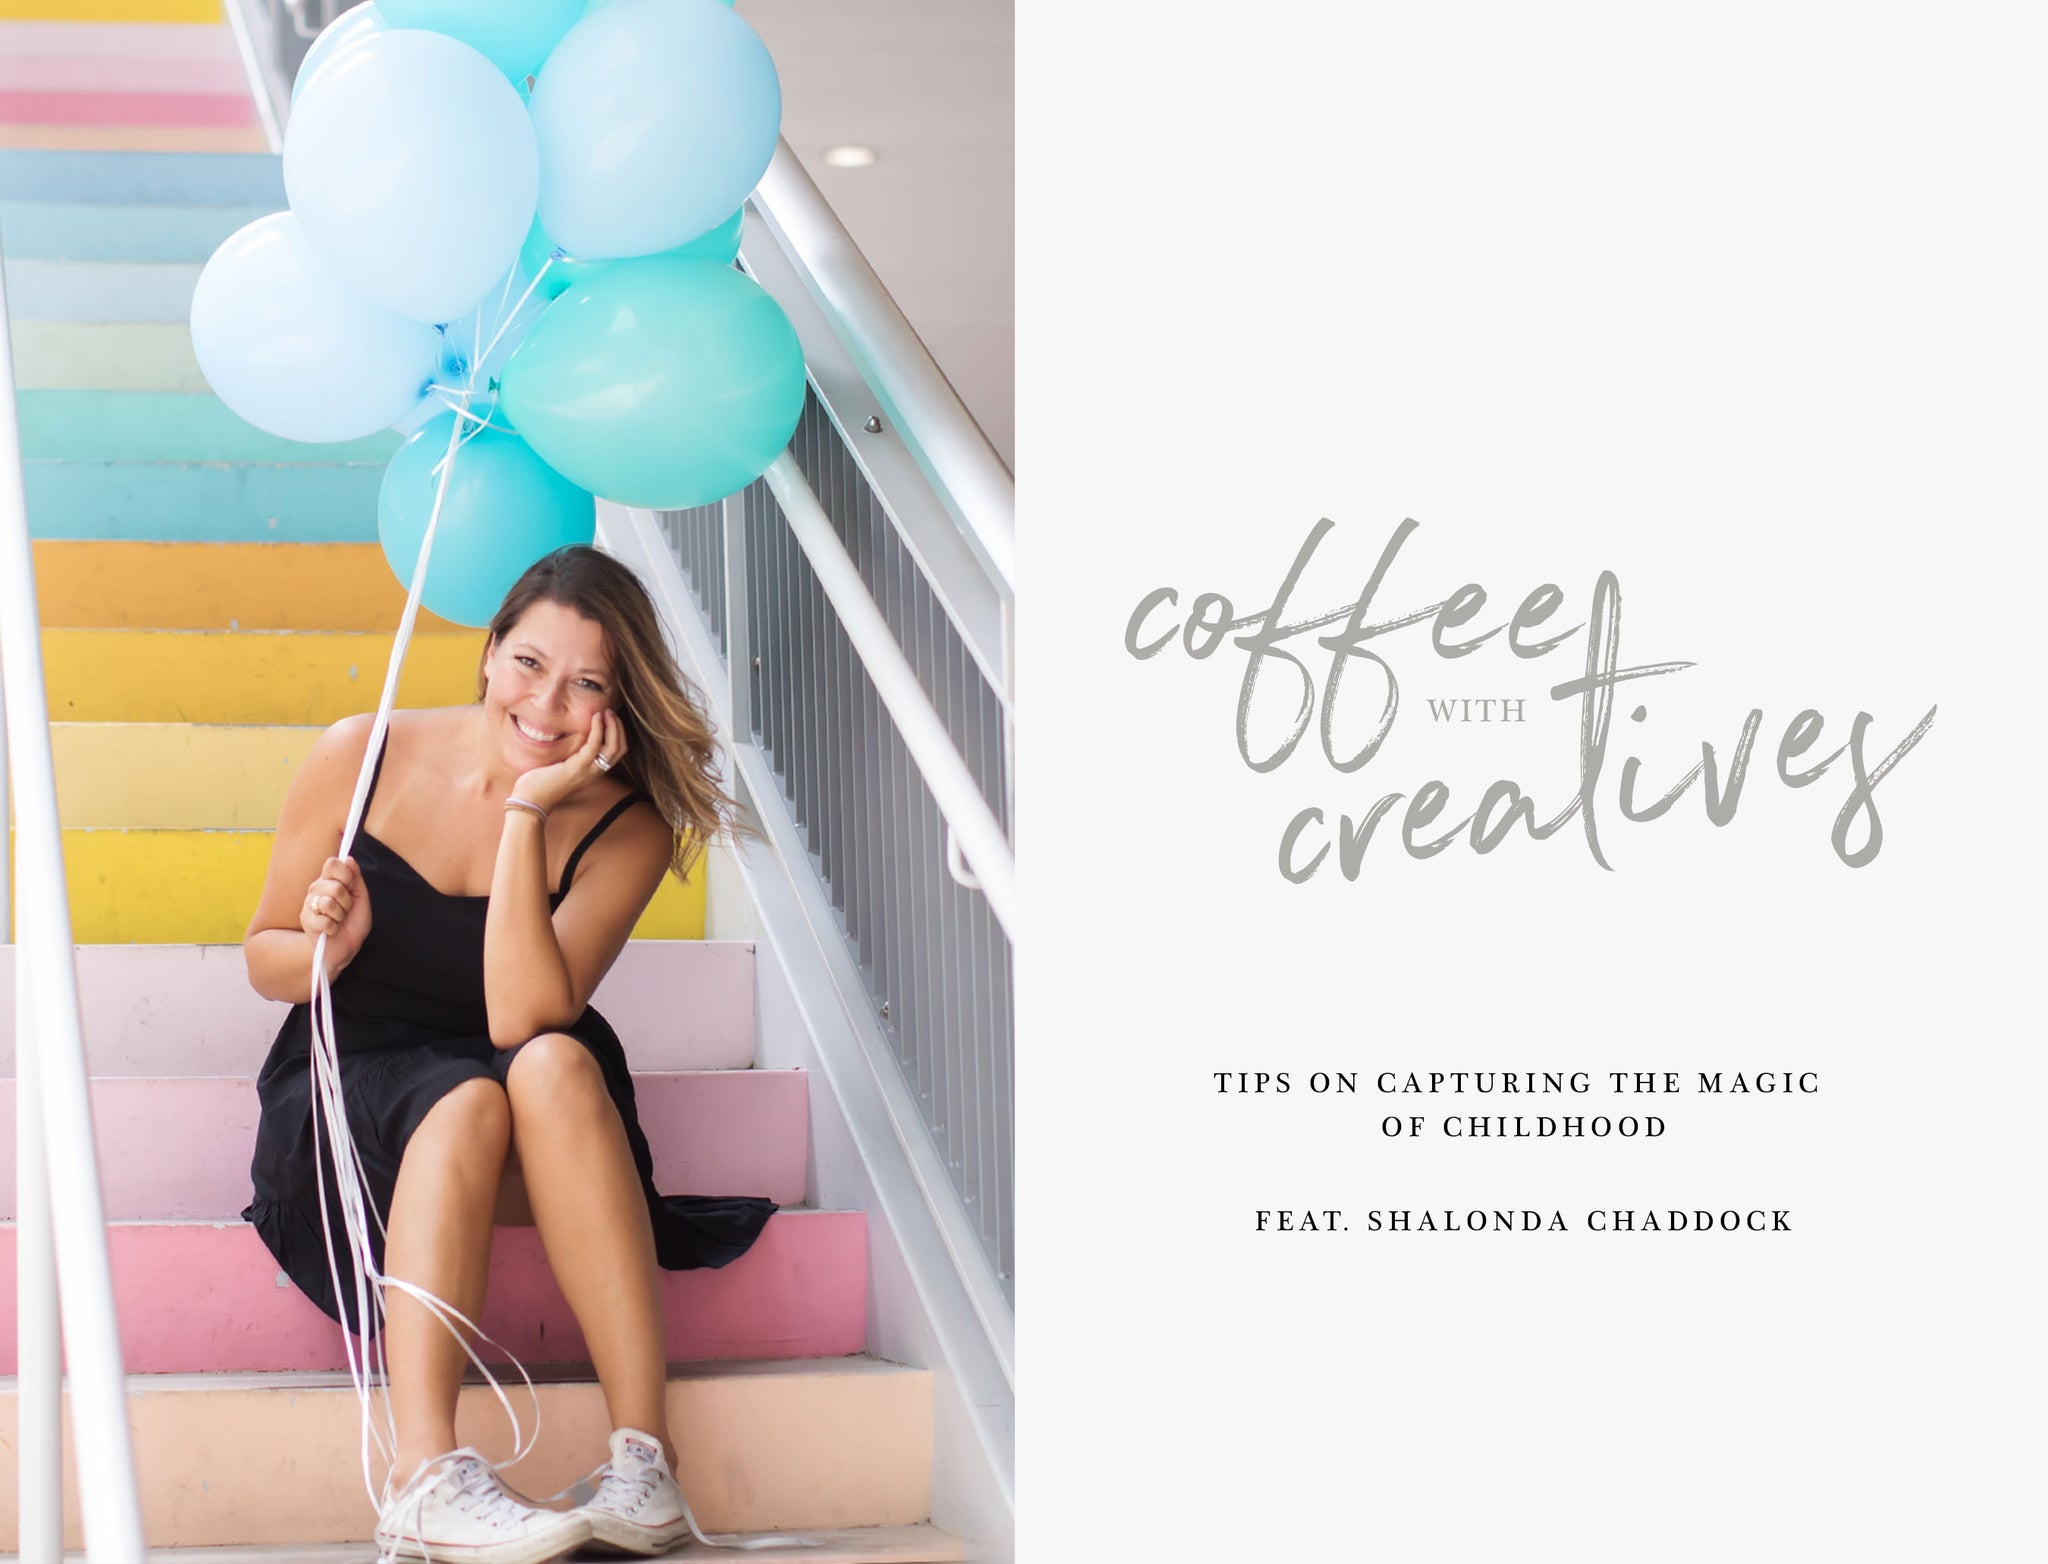 Coffee with Creatives: Shalonda Chaddock's Tips on Capturing the Magic of Childhood